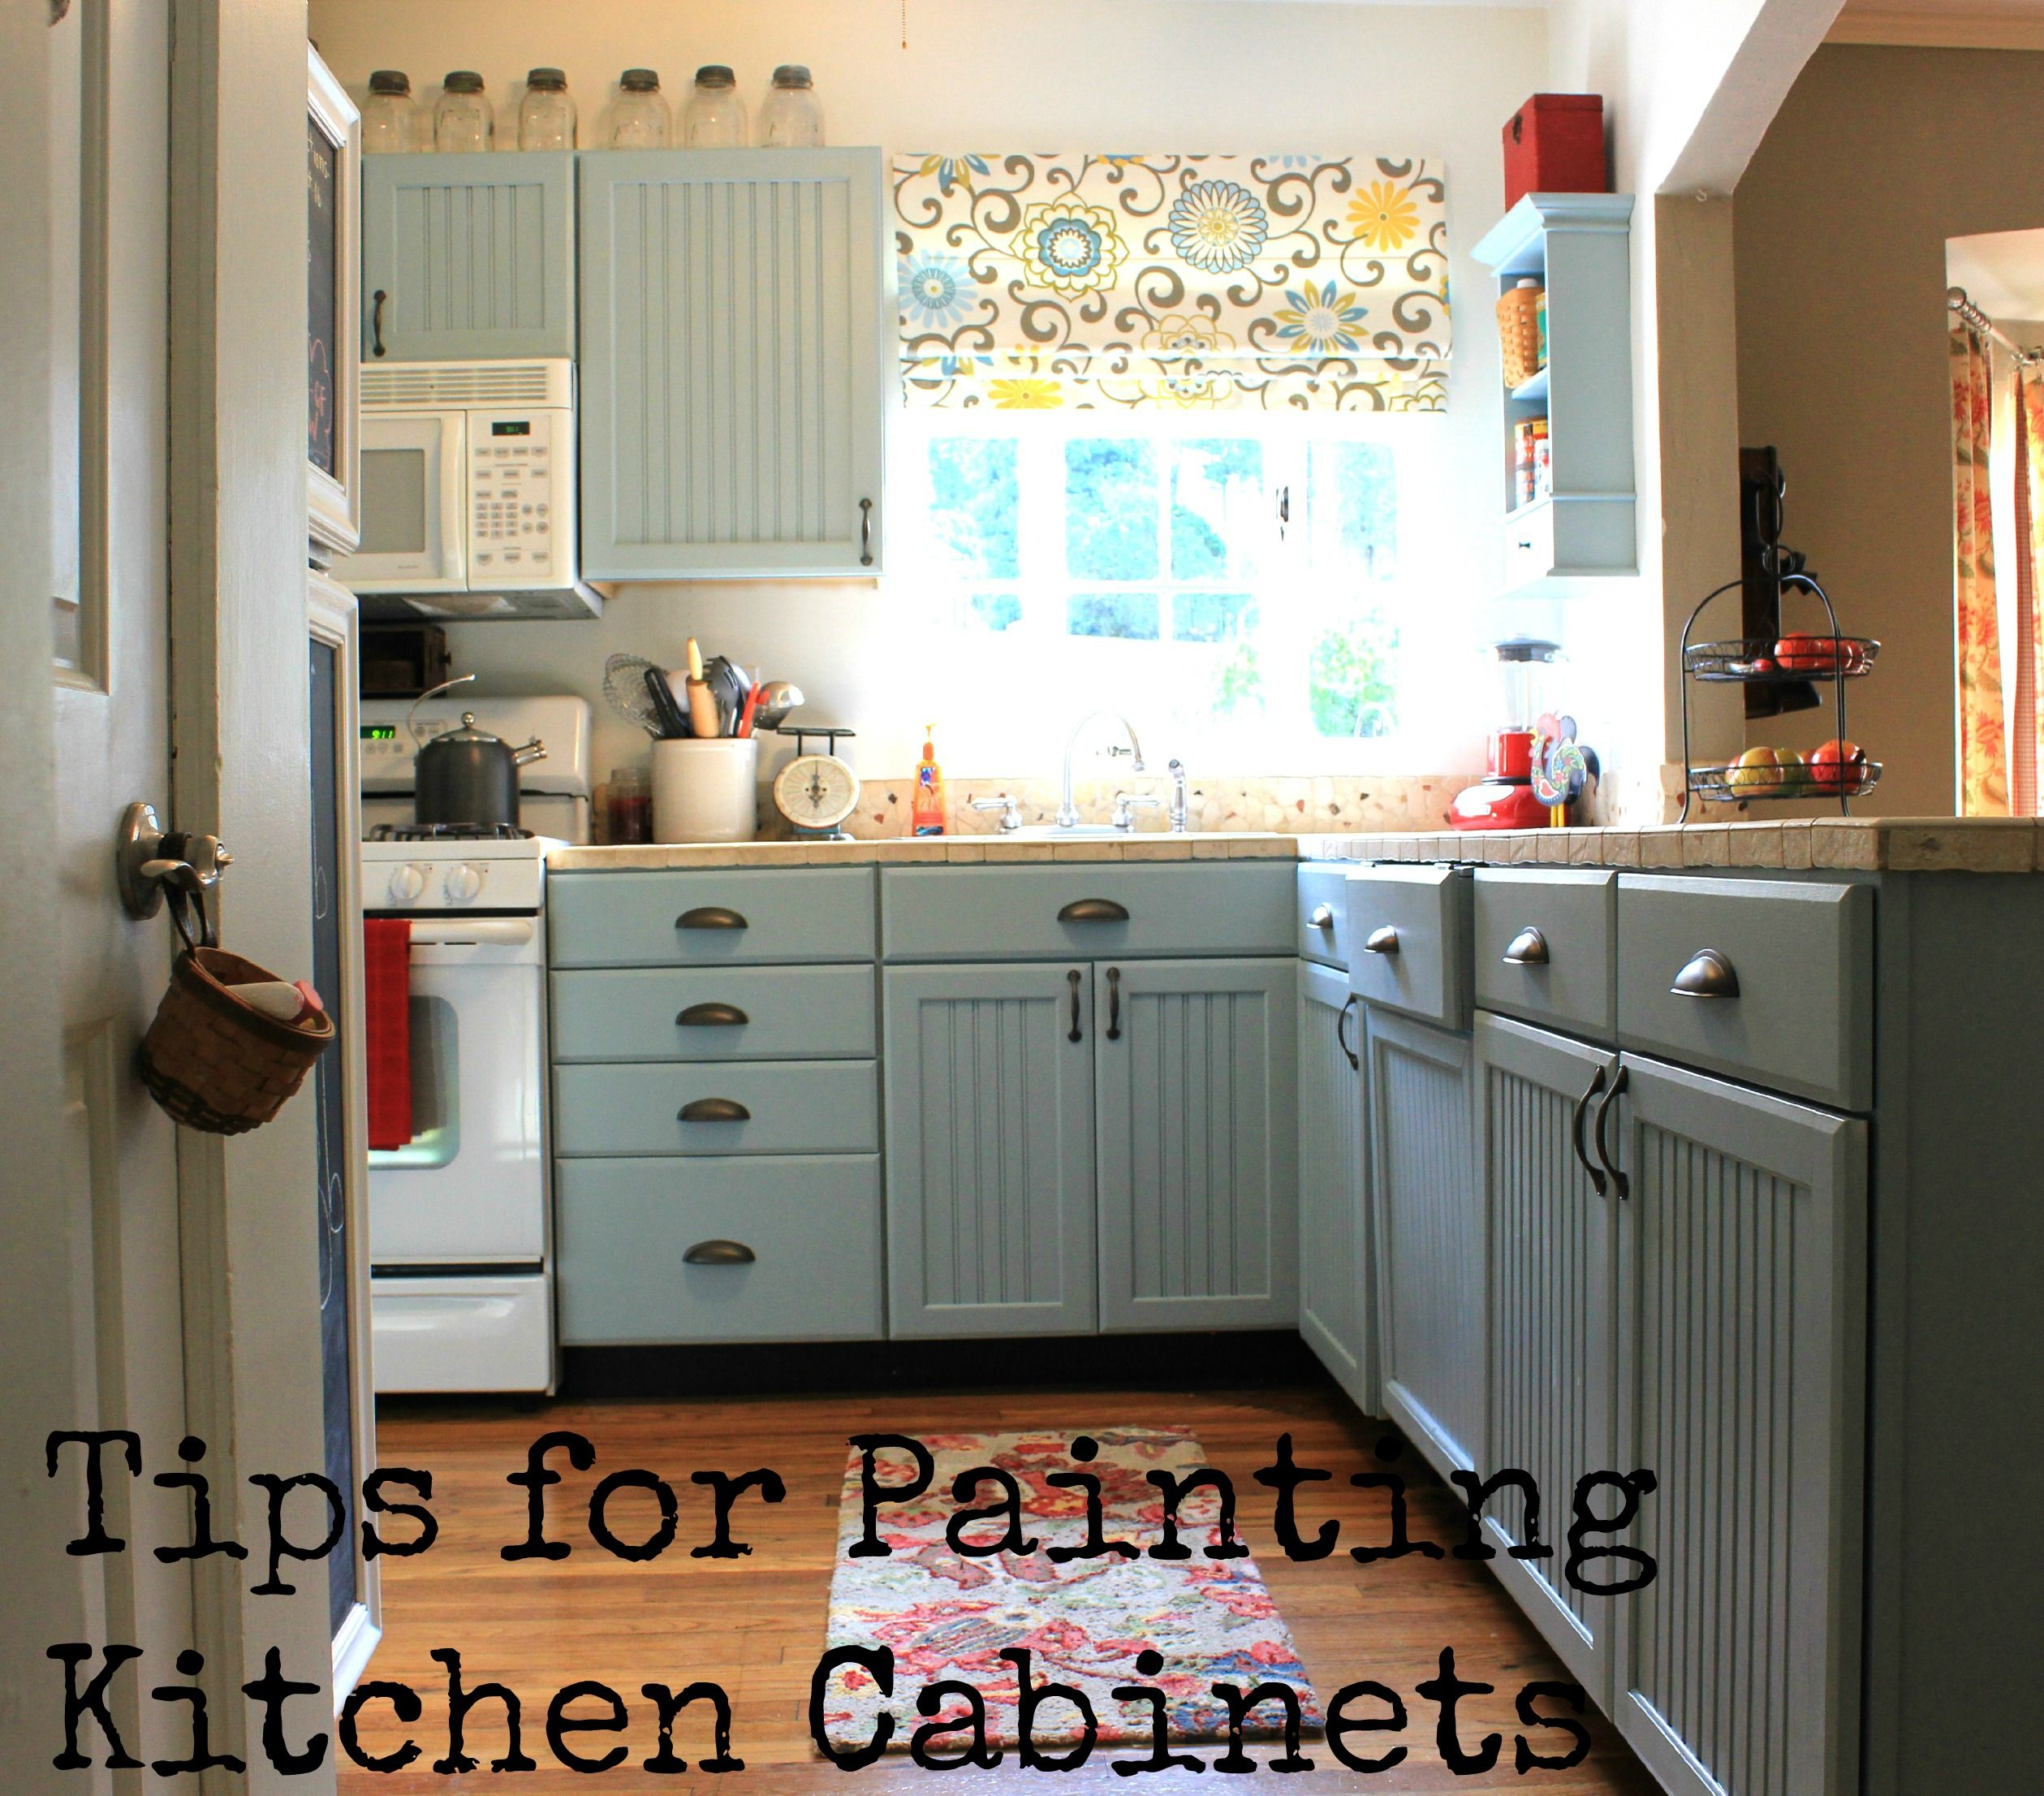 Tips On Painting Kitchen Cabinets: Cottage4C LOVE THIS BLOG! Tips For Painting Kitchen